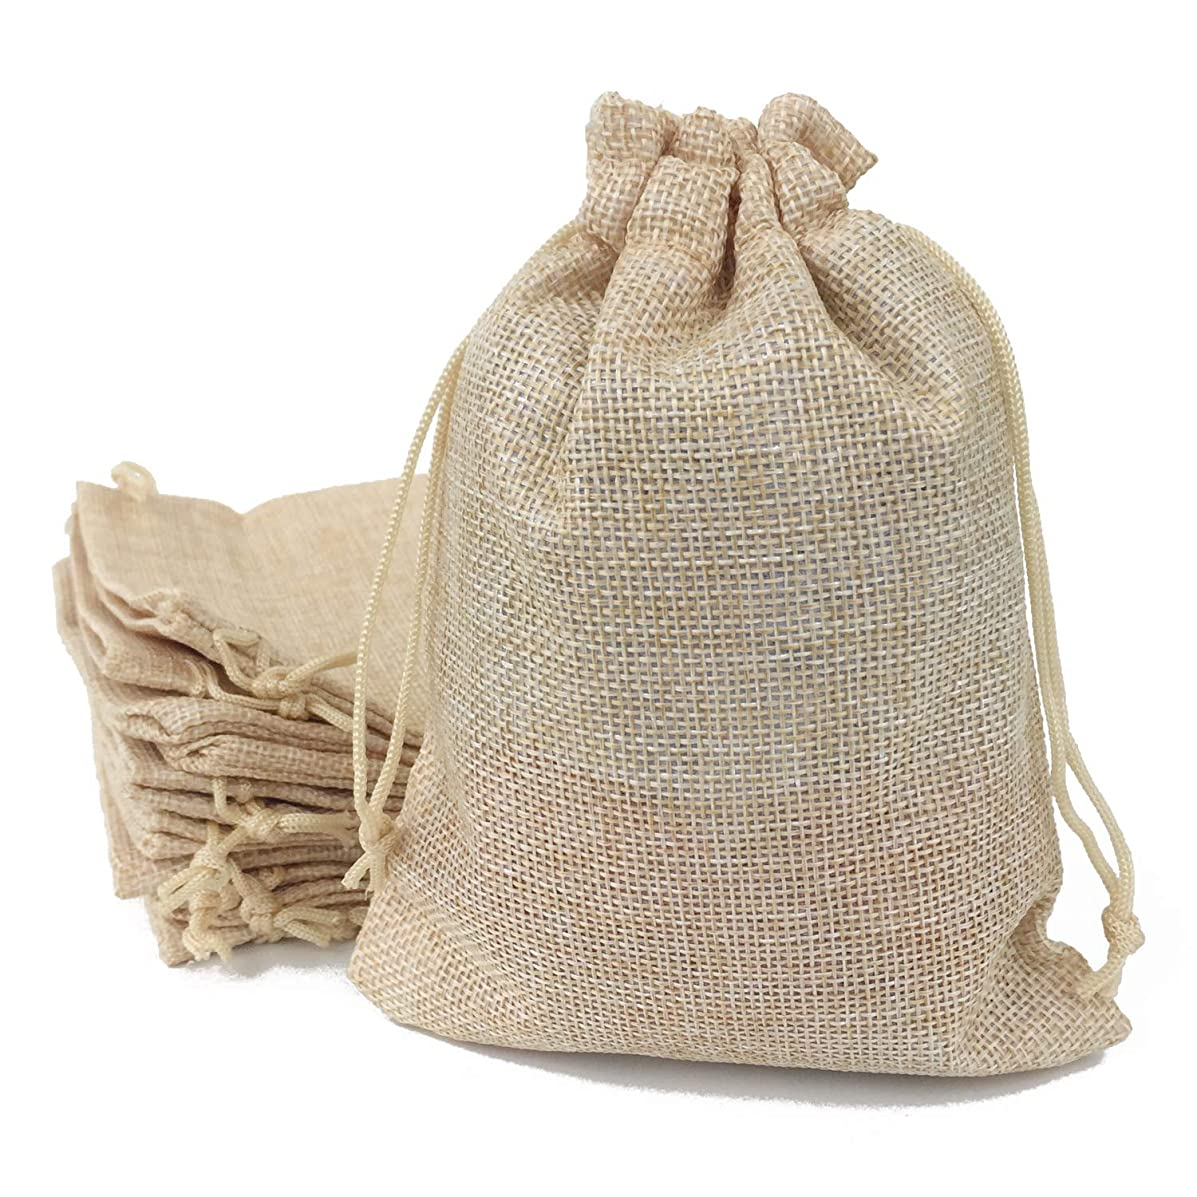 50PCS Burlap Bags with Drawstring Gift Jute bags Included Cotton Lining (4 X 5.5 Inch, 03 Cream)